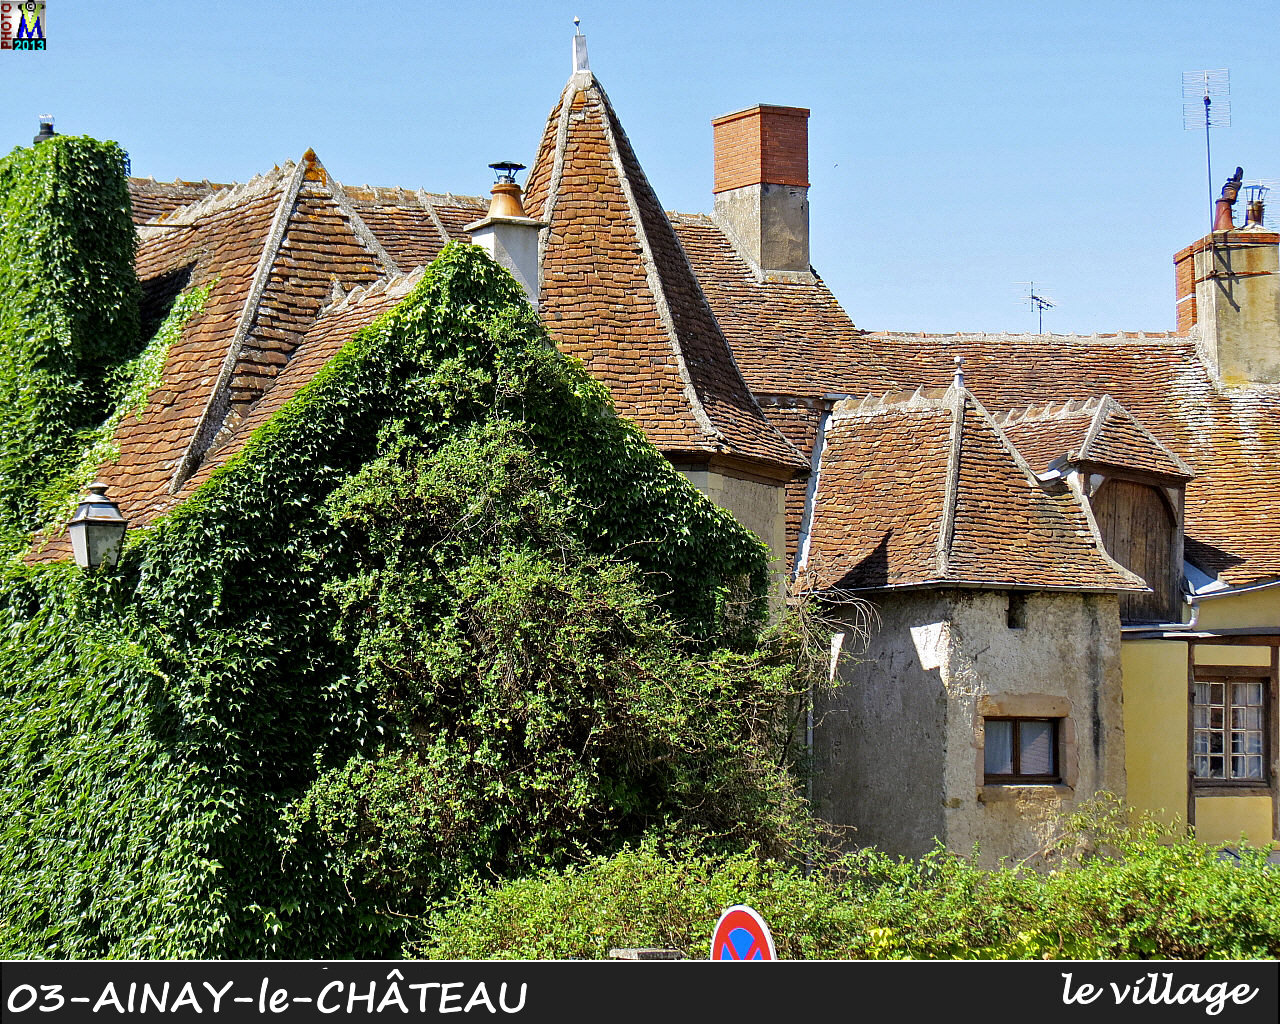 03AINAY-CHATEAU_village_108.jpg